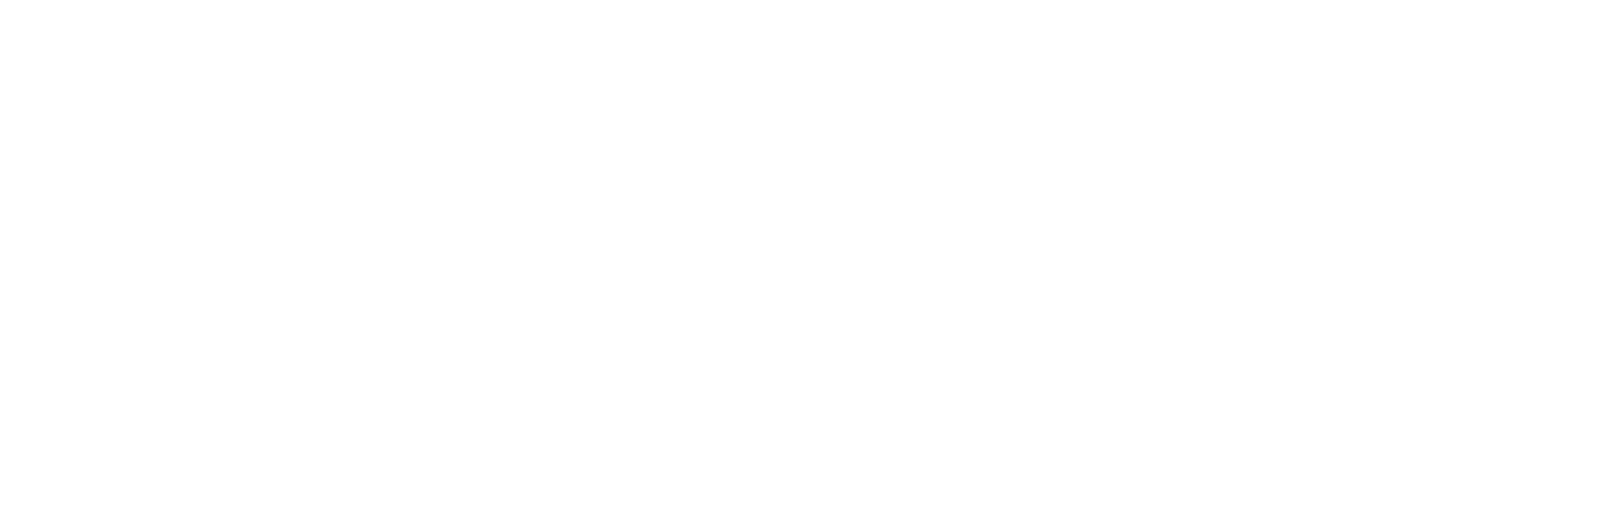 The Kingdom Of Knowledge